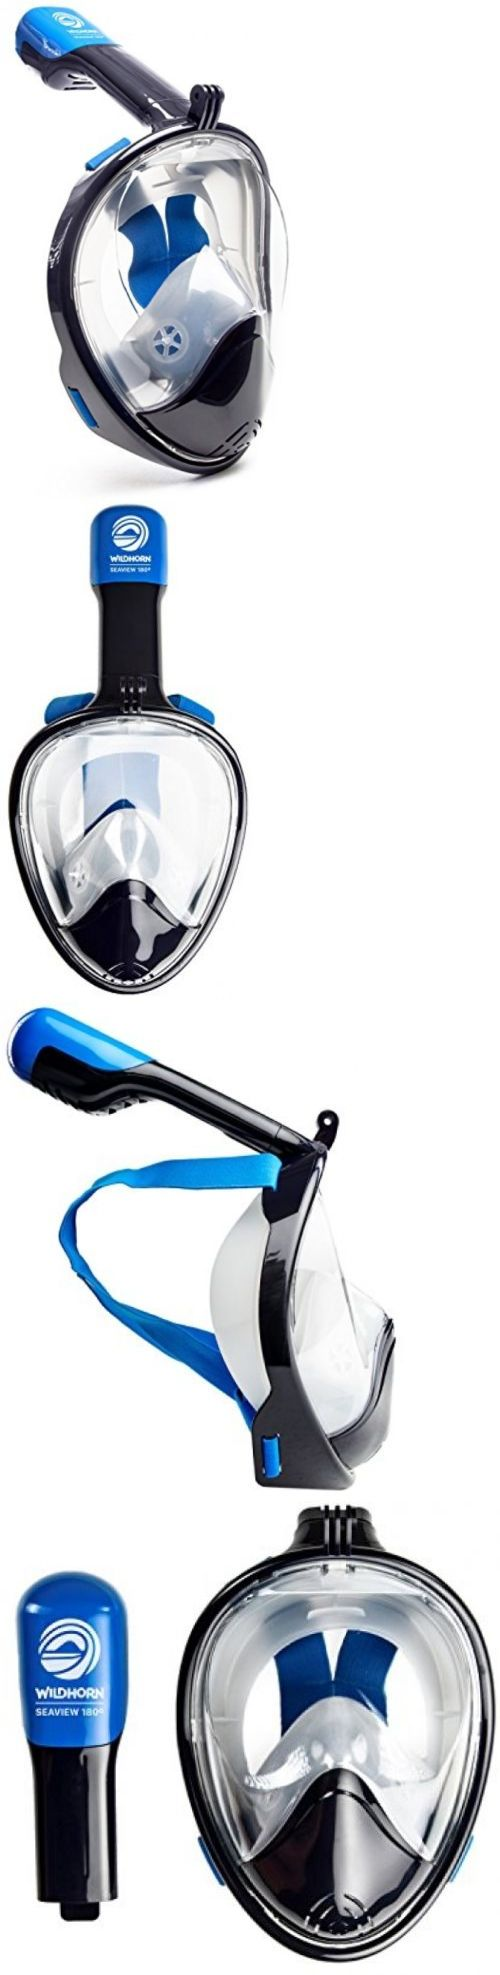 Masks 71161: L/Xl Full Face Mask For Snorkel Scuba Diving Swimming Anti Fog Surface Gopro New -> BUY IT NOW ONLY: $111.99 on eBay!